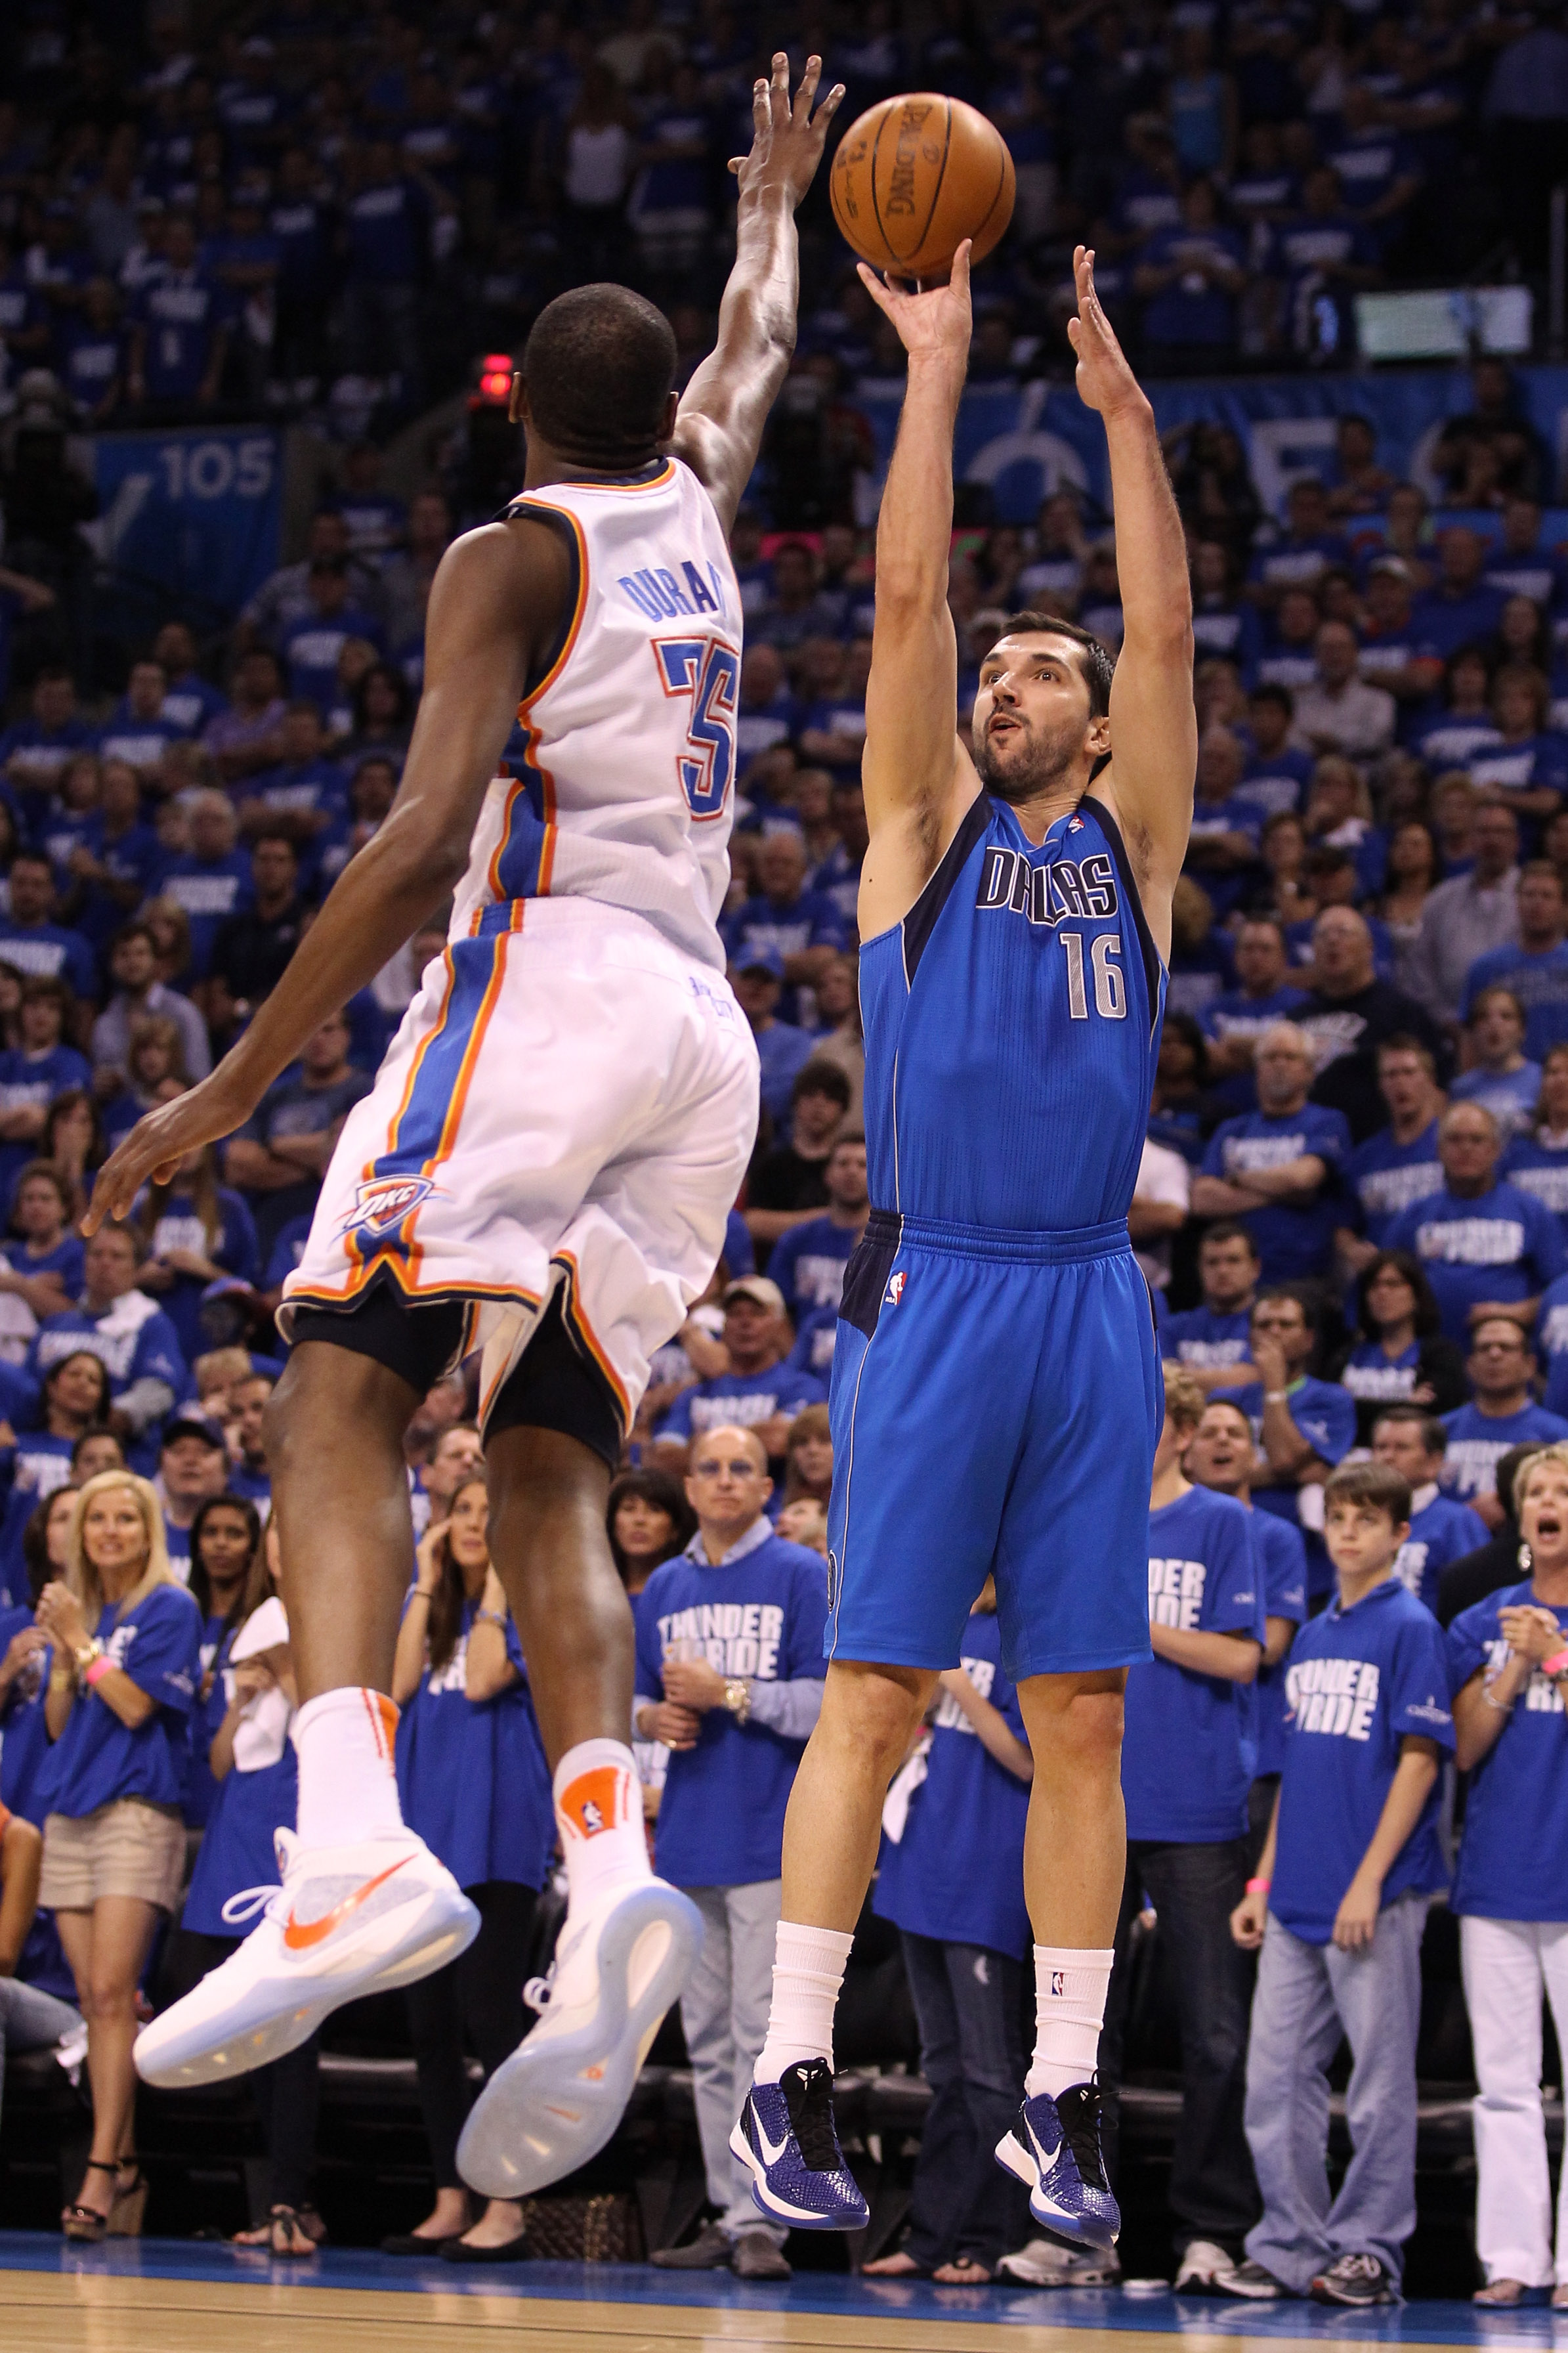 OKLAHOMA CITY, OK - MAY 21:  Peja Stojakovic #16 of the Dallas Mavericks shoots the ball over Kevin Durant #35 of the Oklahoma City Thunder in the first quarter in Game Three of the Western Conference Finals during the 2011 NBA Playoffs at Oklahoma City A